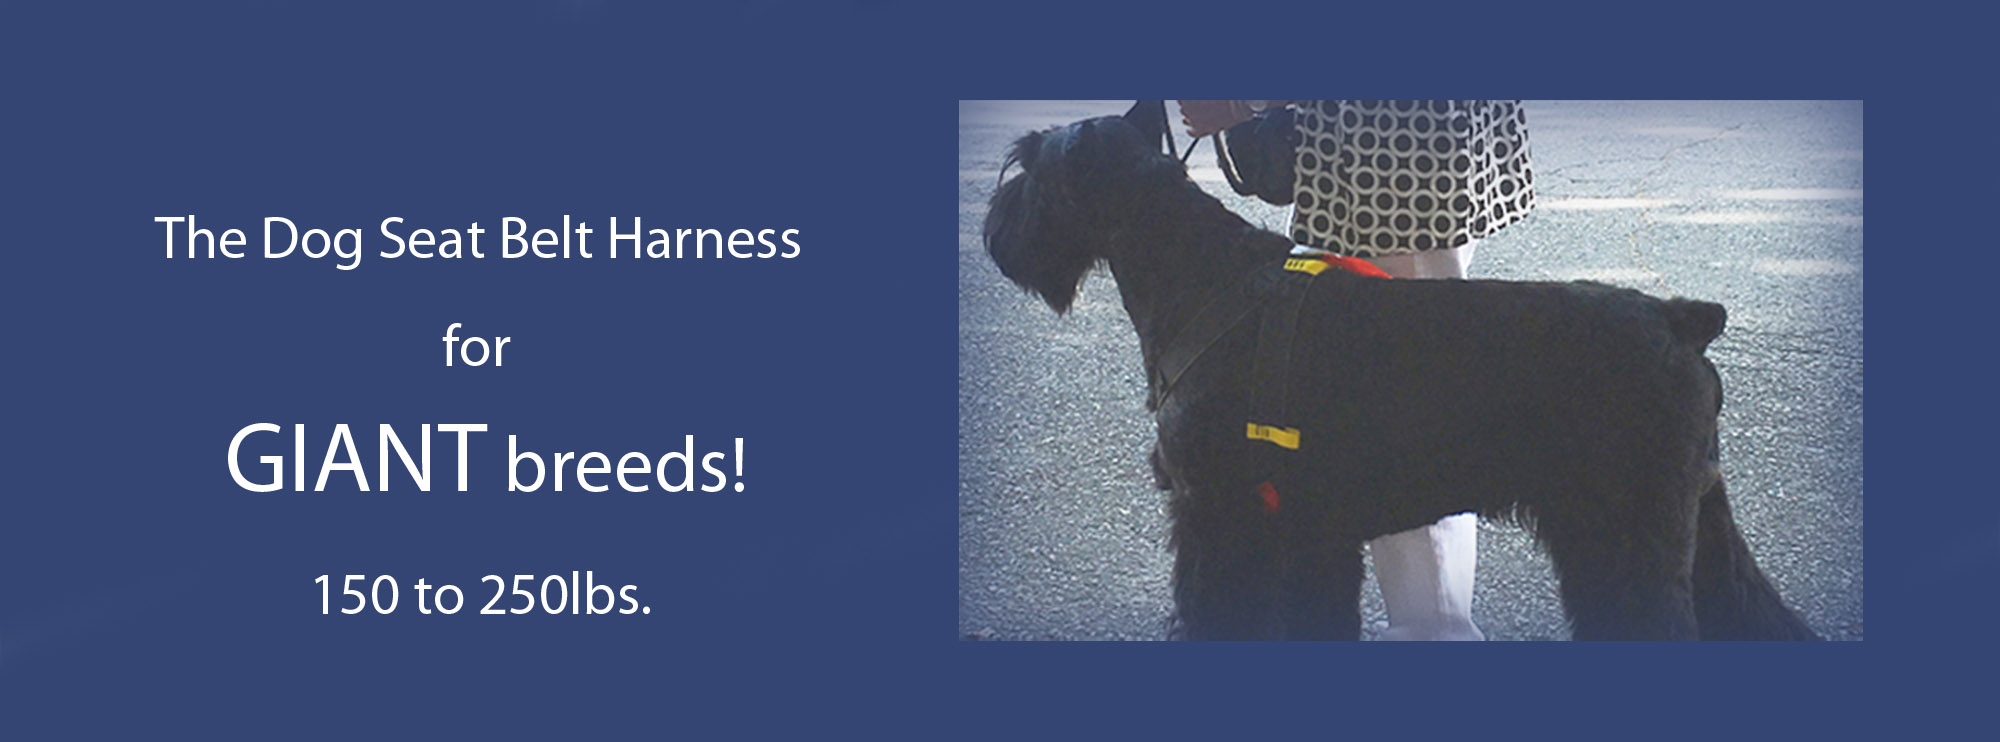 Ruff Rider Dog Safety Harness seatbelt for Giant Breeds 150 to 250lbs.